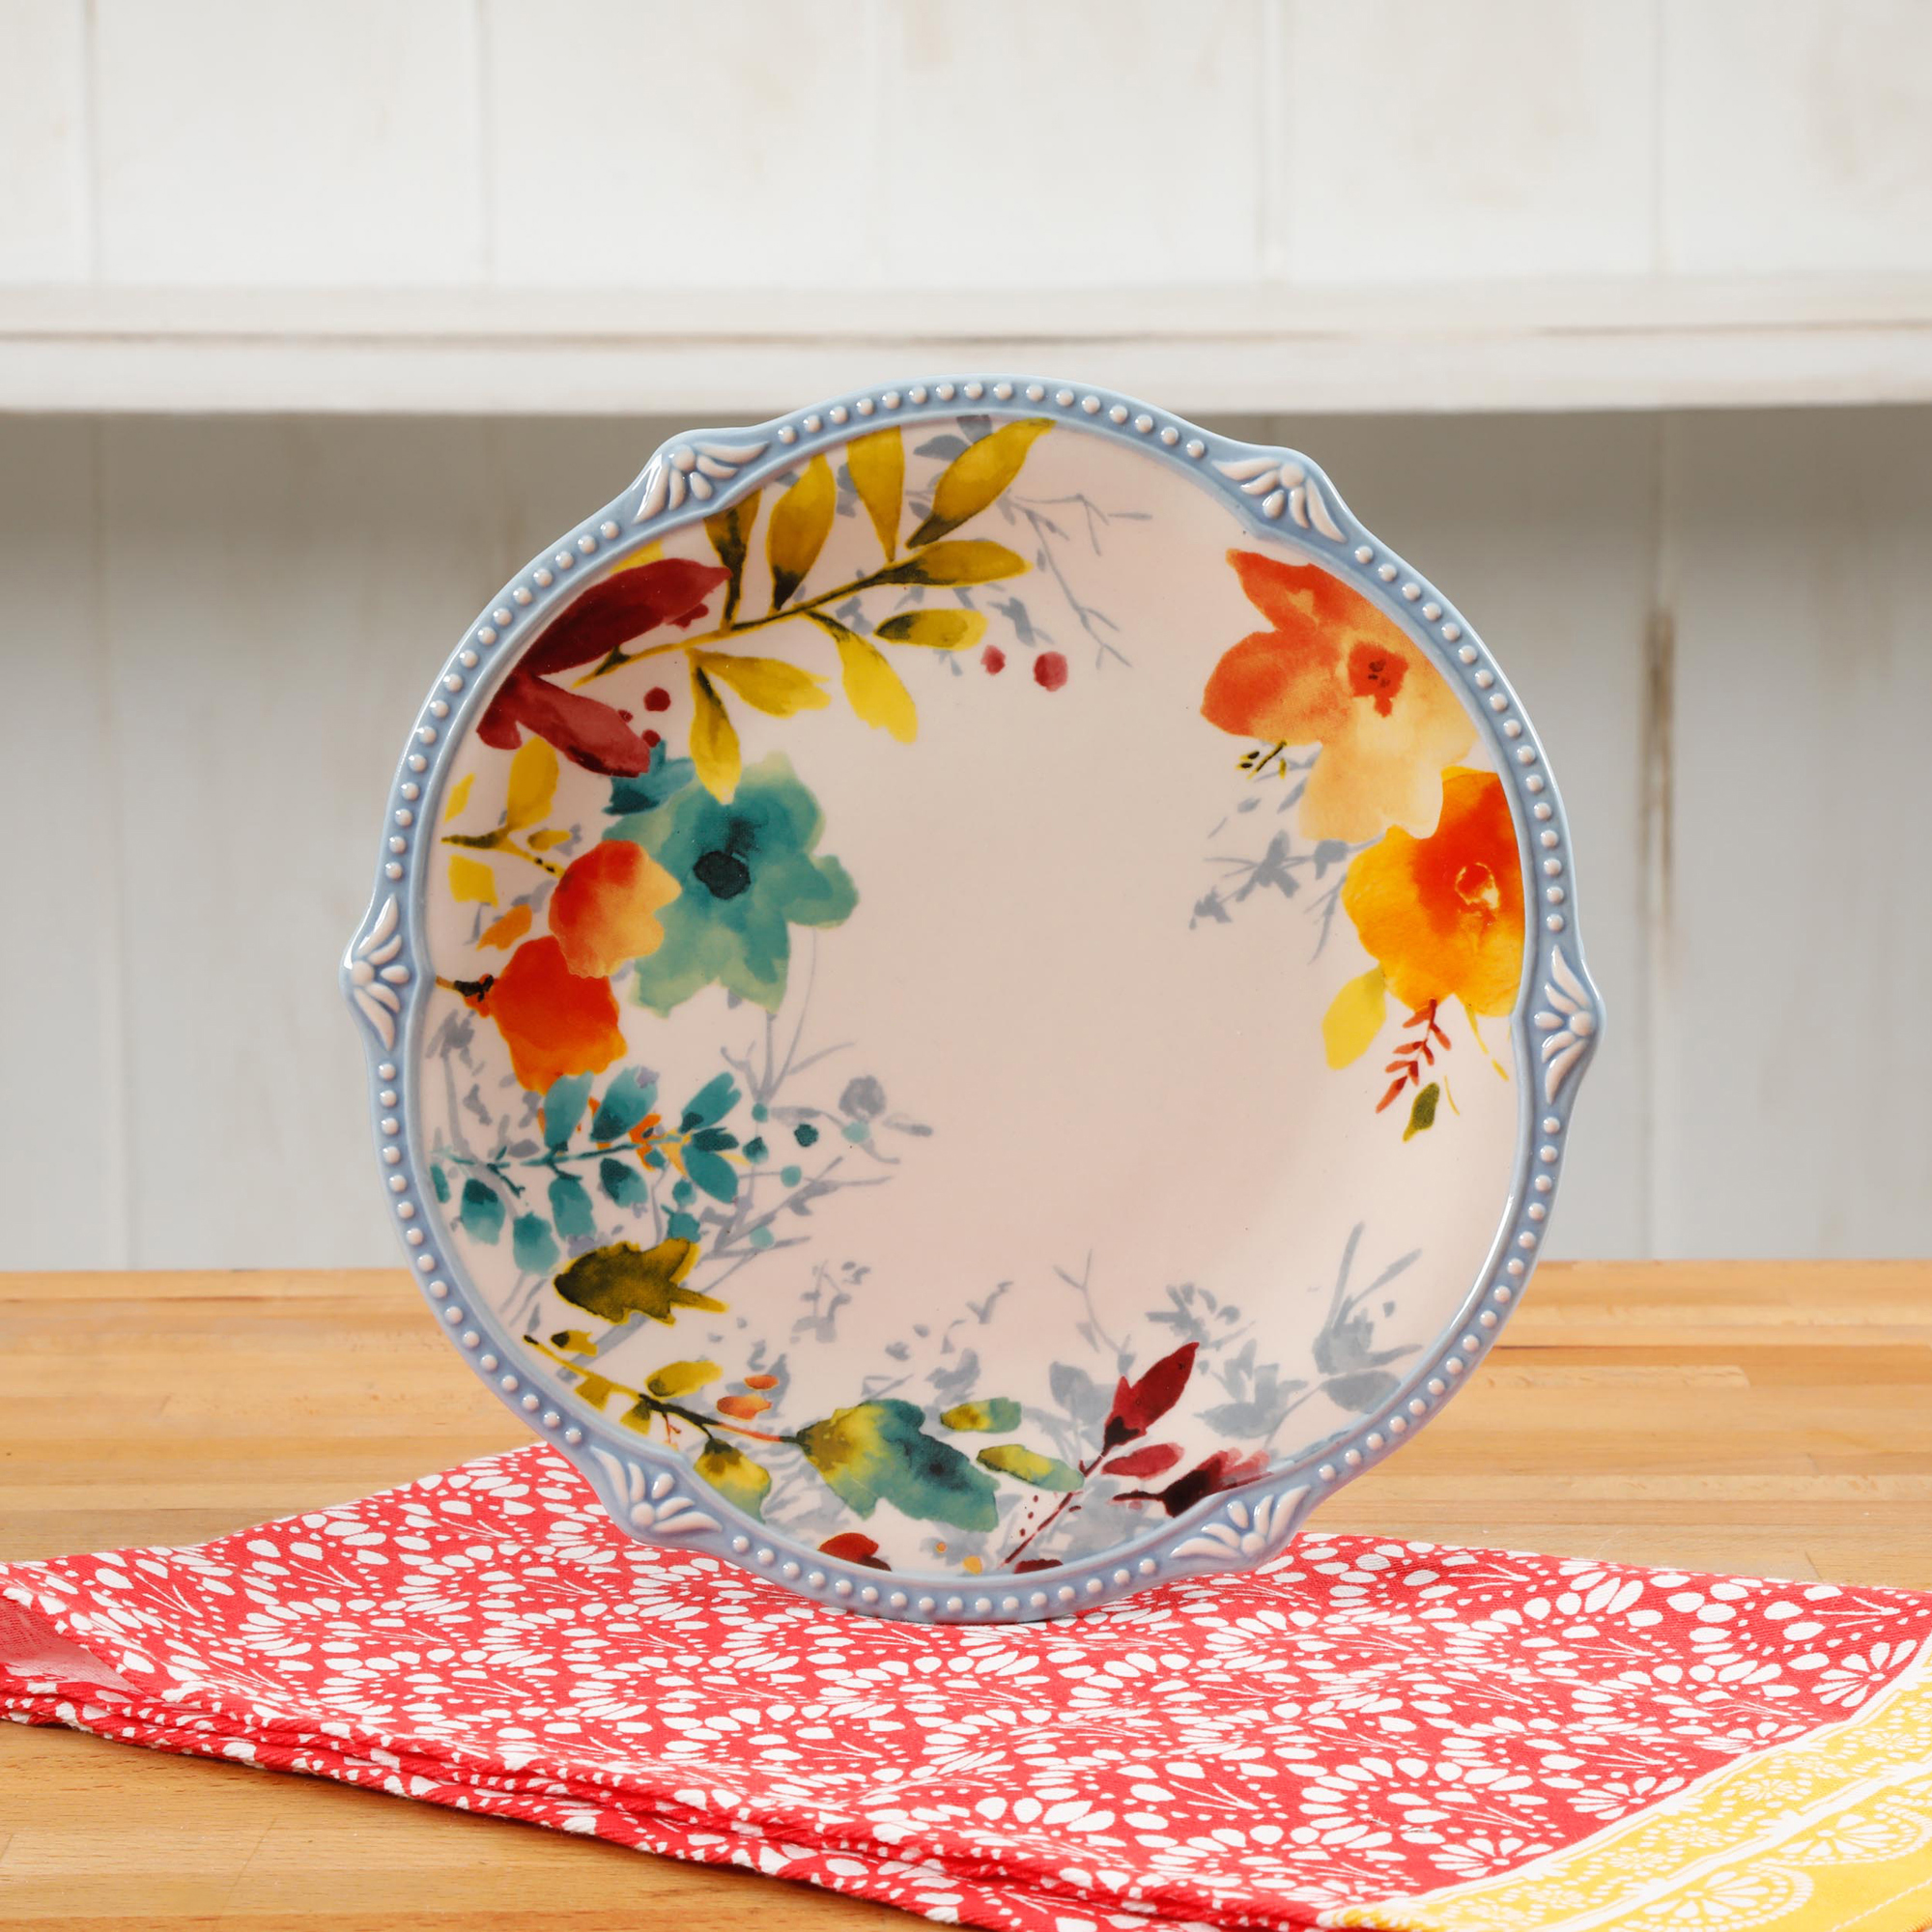 The Pioneer Woman Willow 8.75-Inch Salad Plates, Set of 4